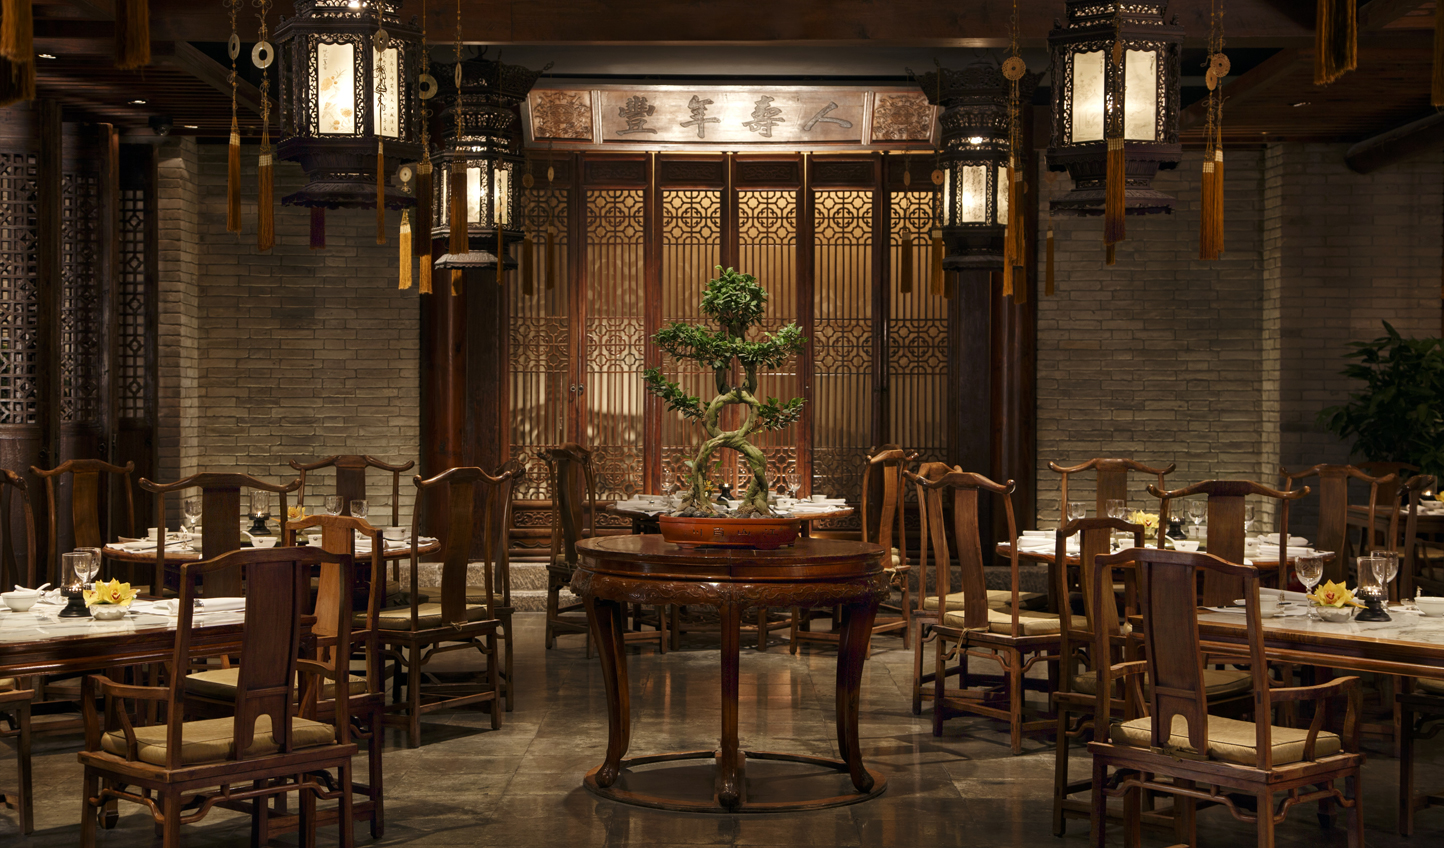 Sample traditional Cantonese cuisine at Huang Ting